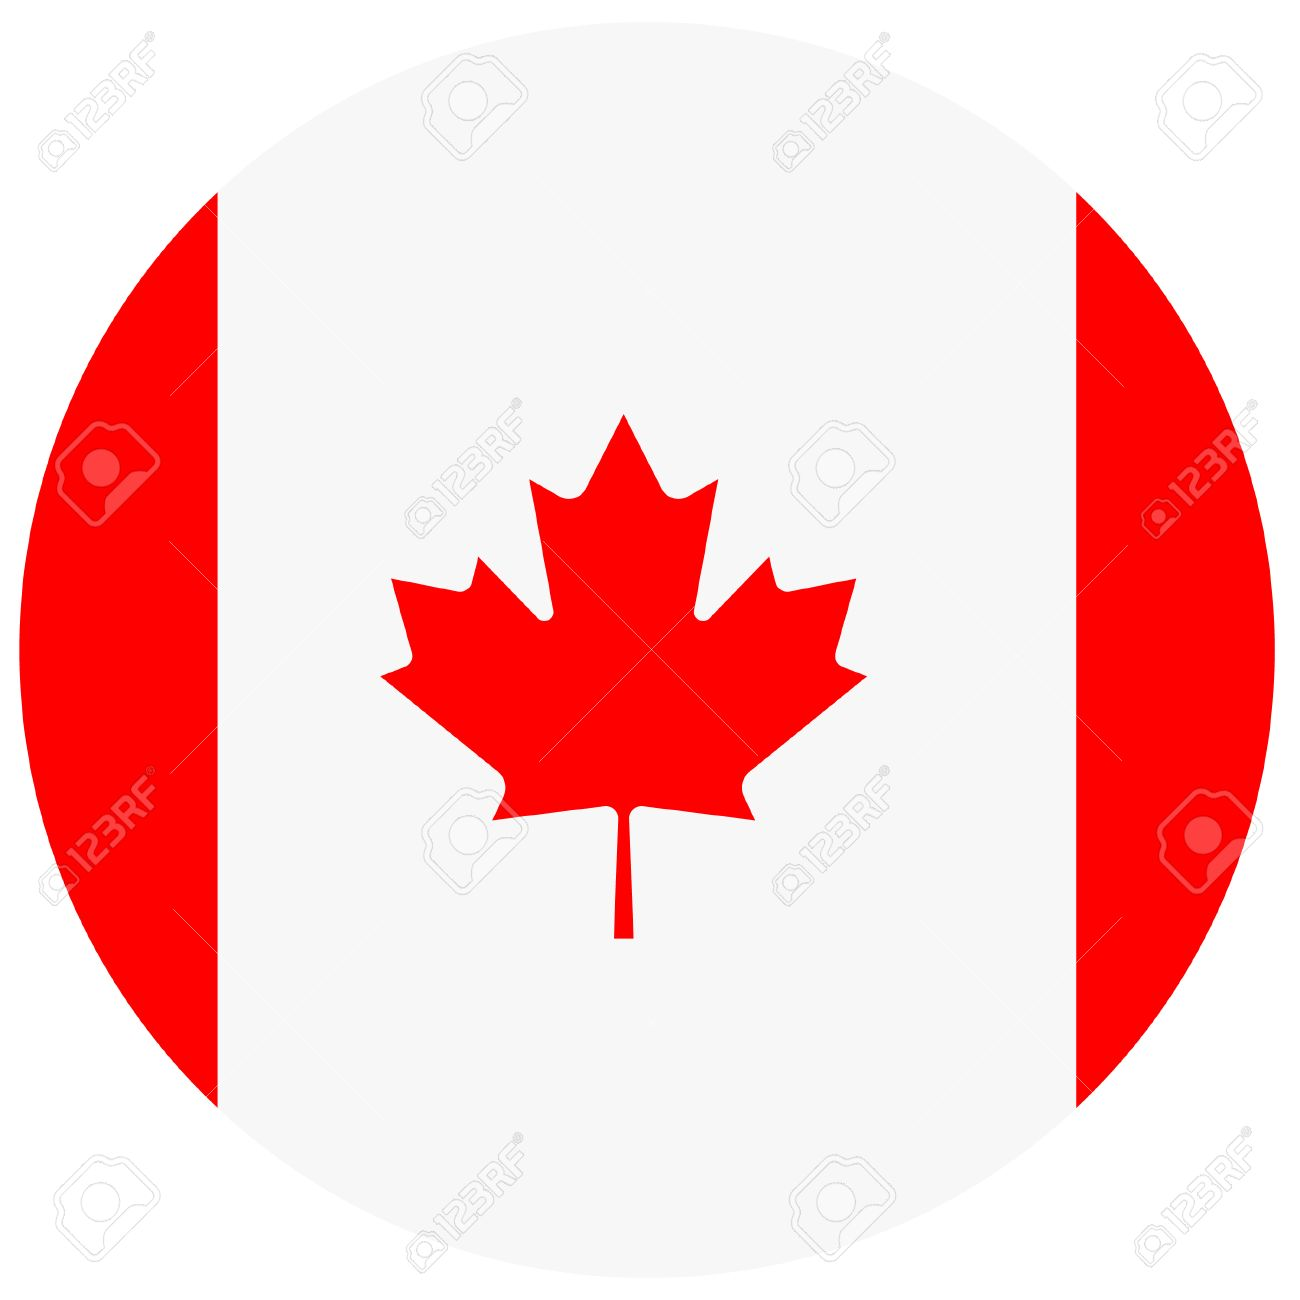 vector illustration of canada flag round national flag of canada rh 123rf com canadian flag vector free download canadian flag vector eps